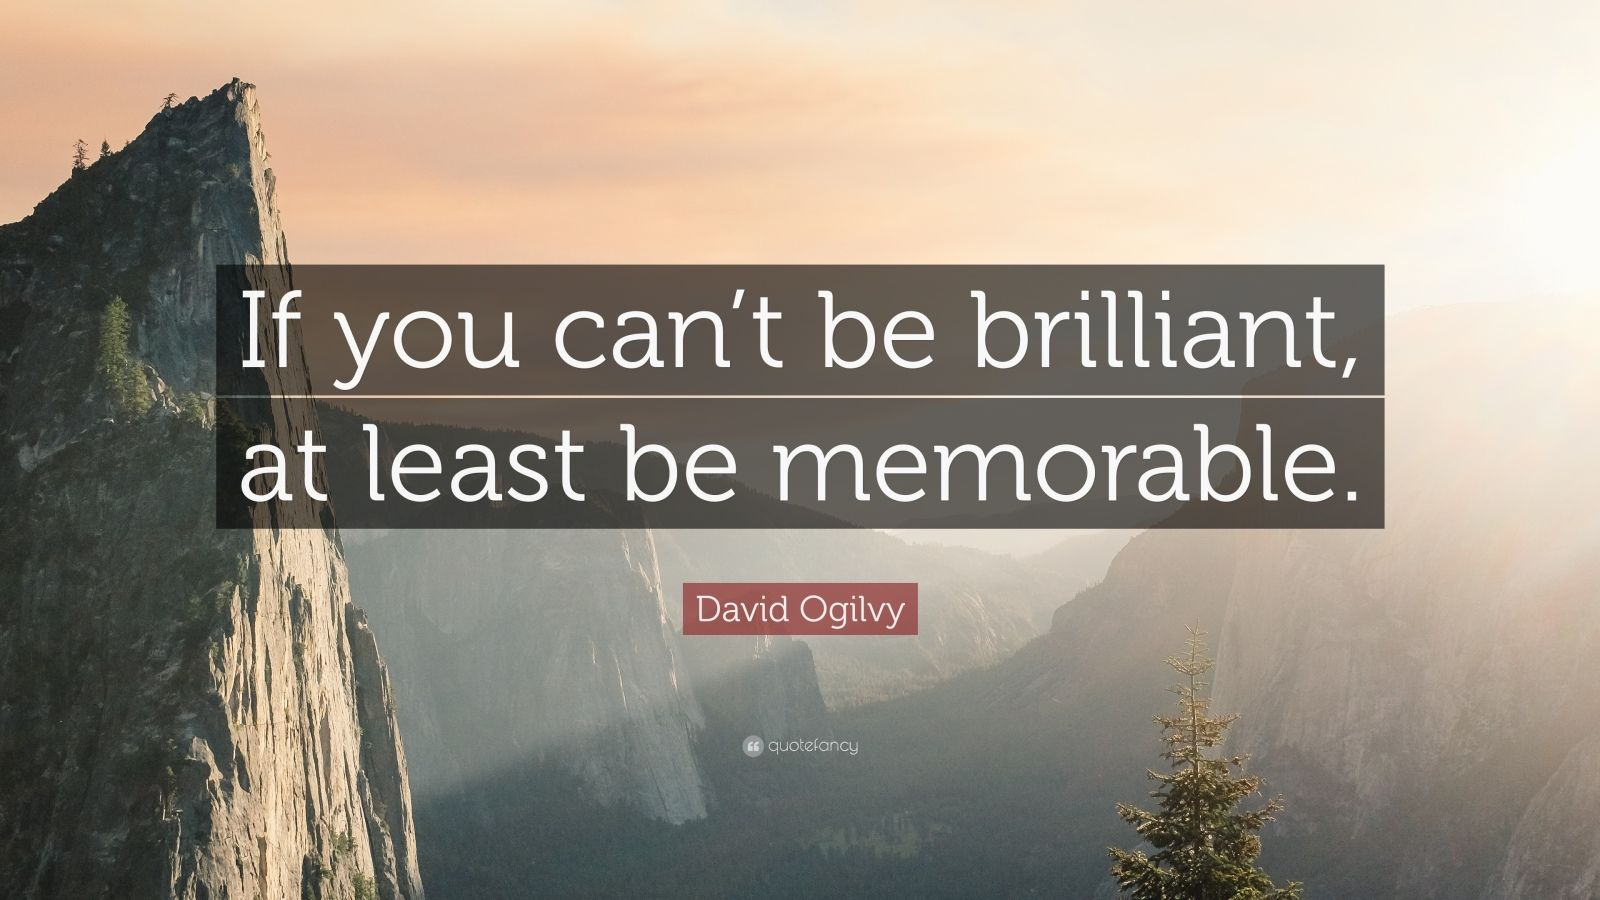 David Ogilvy Quotes Magnificent David Ogilvy Quotes 100 Wallpapers  Quotefancy